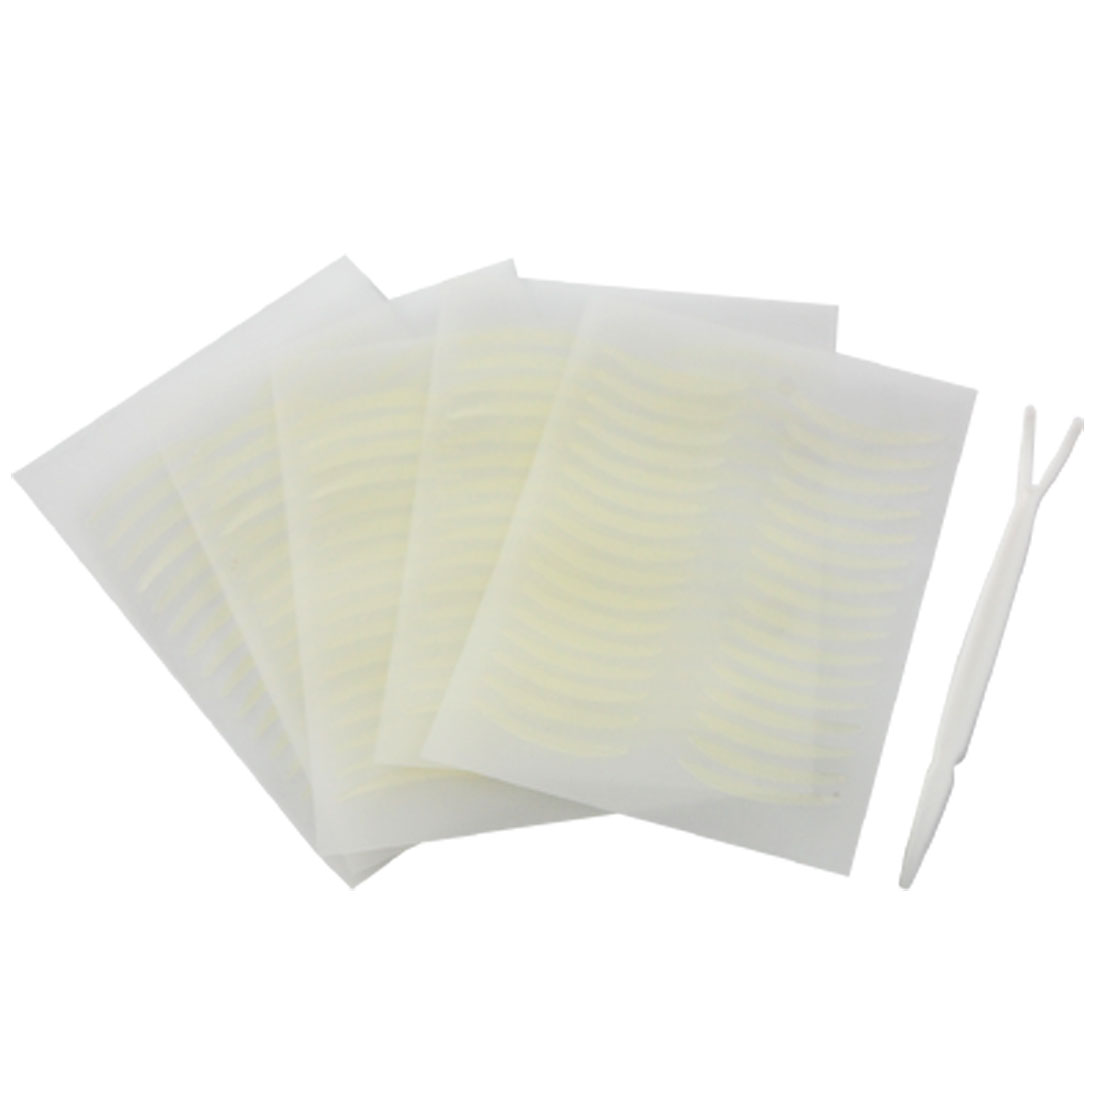 80 Pair Adhesive Double Eyelid Maker Sticker Pad w Plastic White Clip